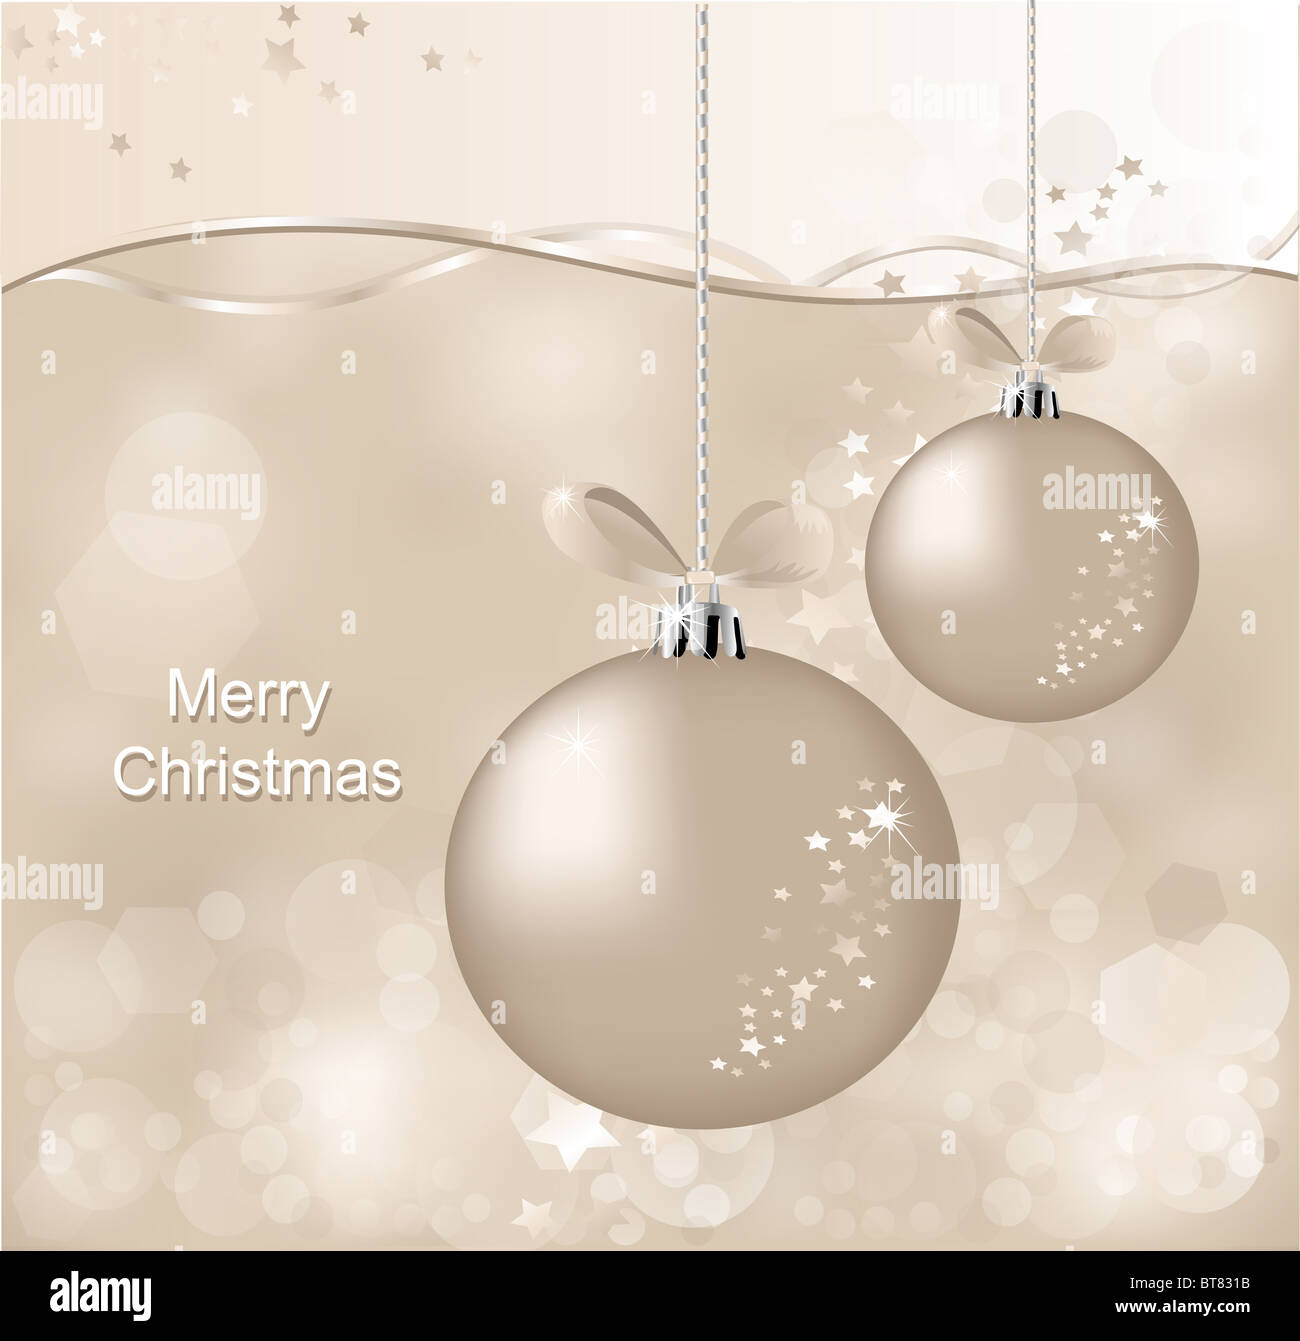 christmas background with ball and asterisks - Stock Image